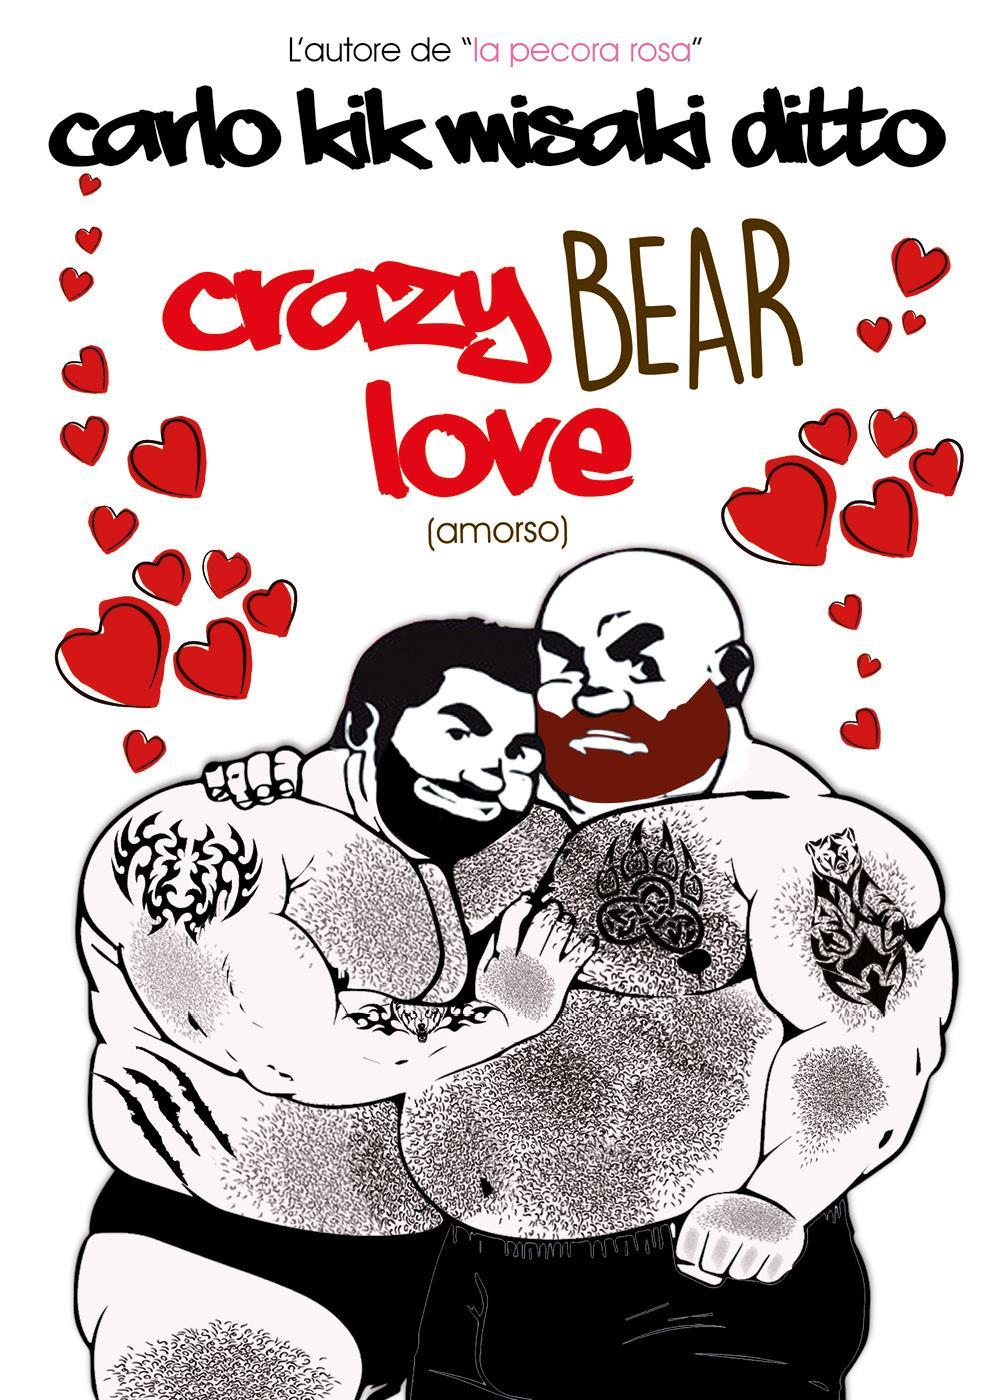 Crazy bear love